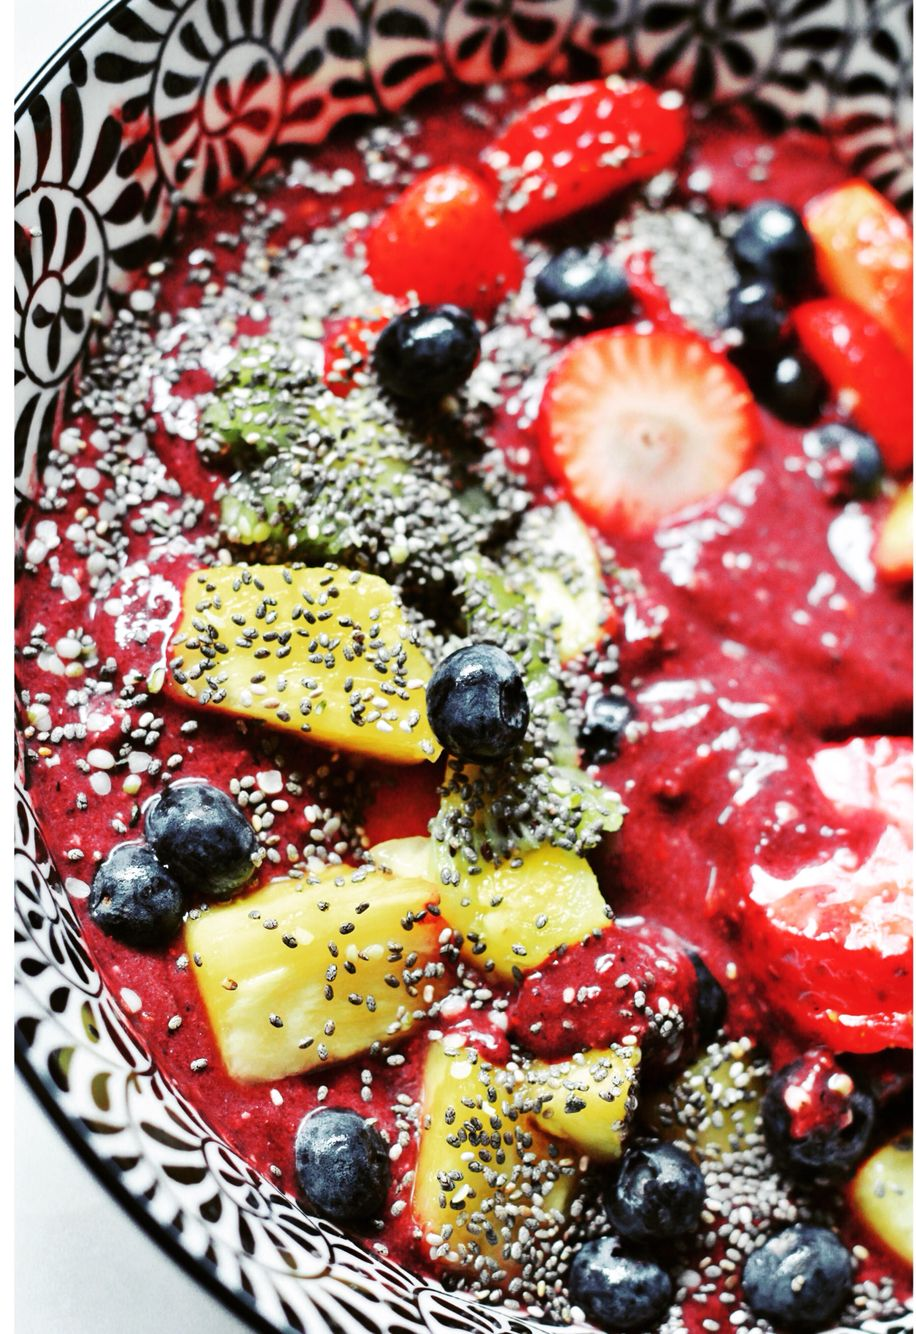 Acai smoothie bowl with fresh coconut water, various fruit toppings, banana and chia seeds #yum #healthy #cleaneating